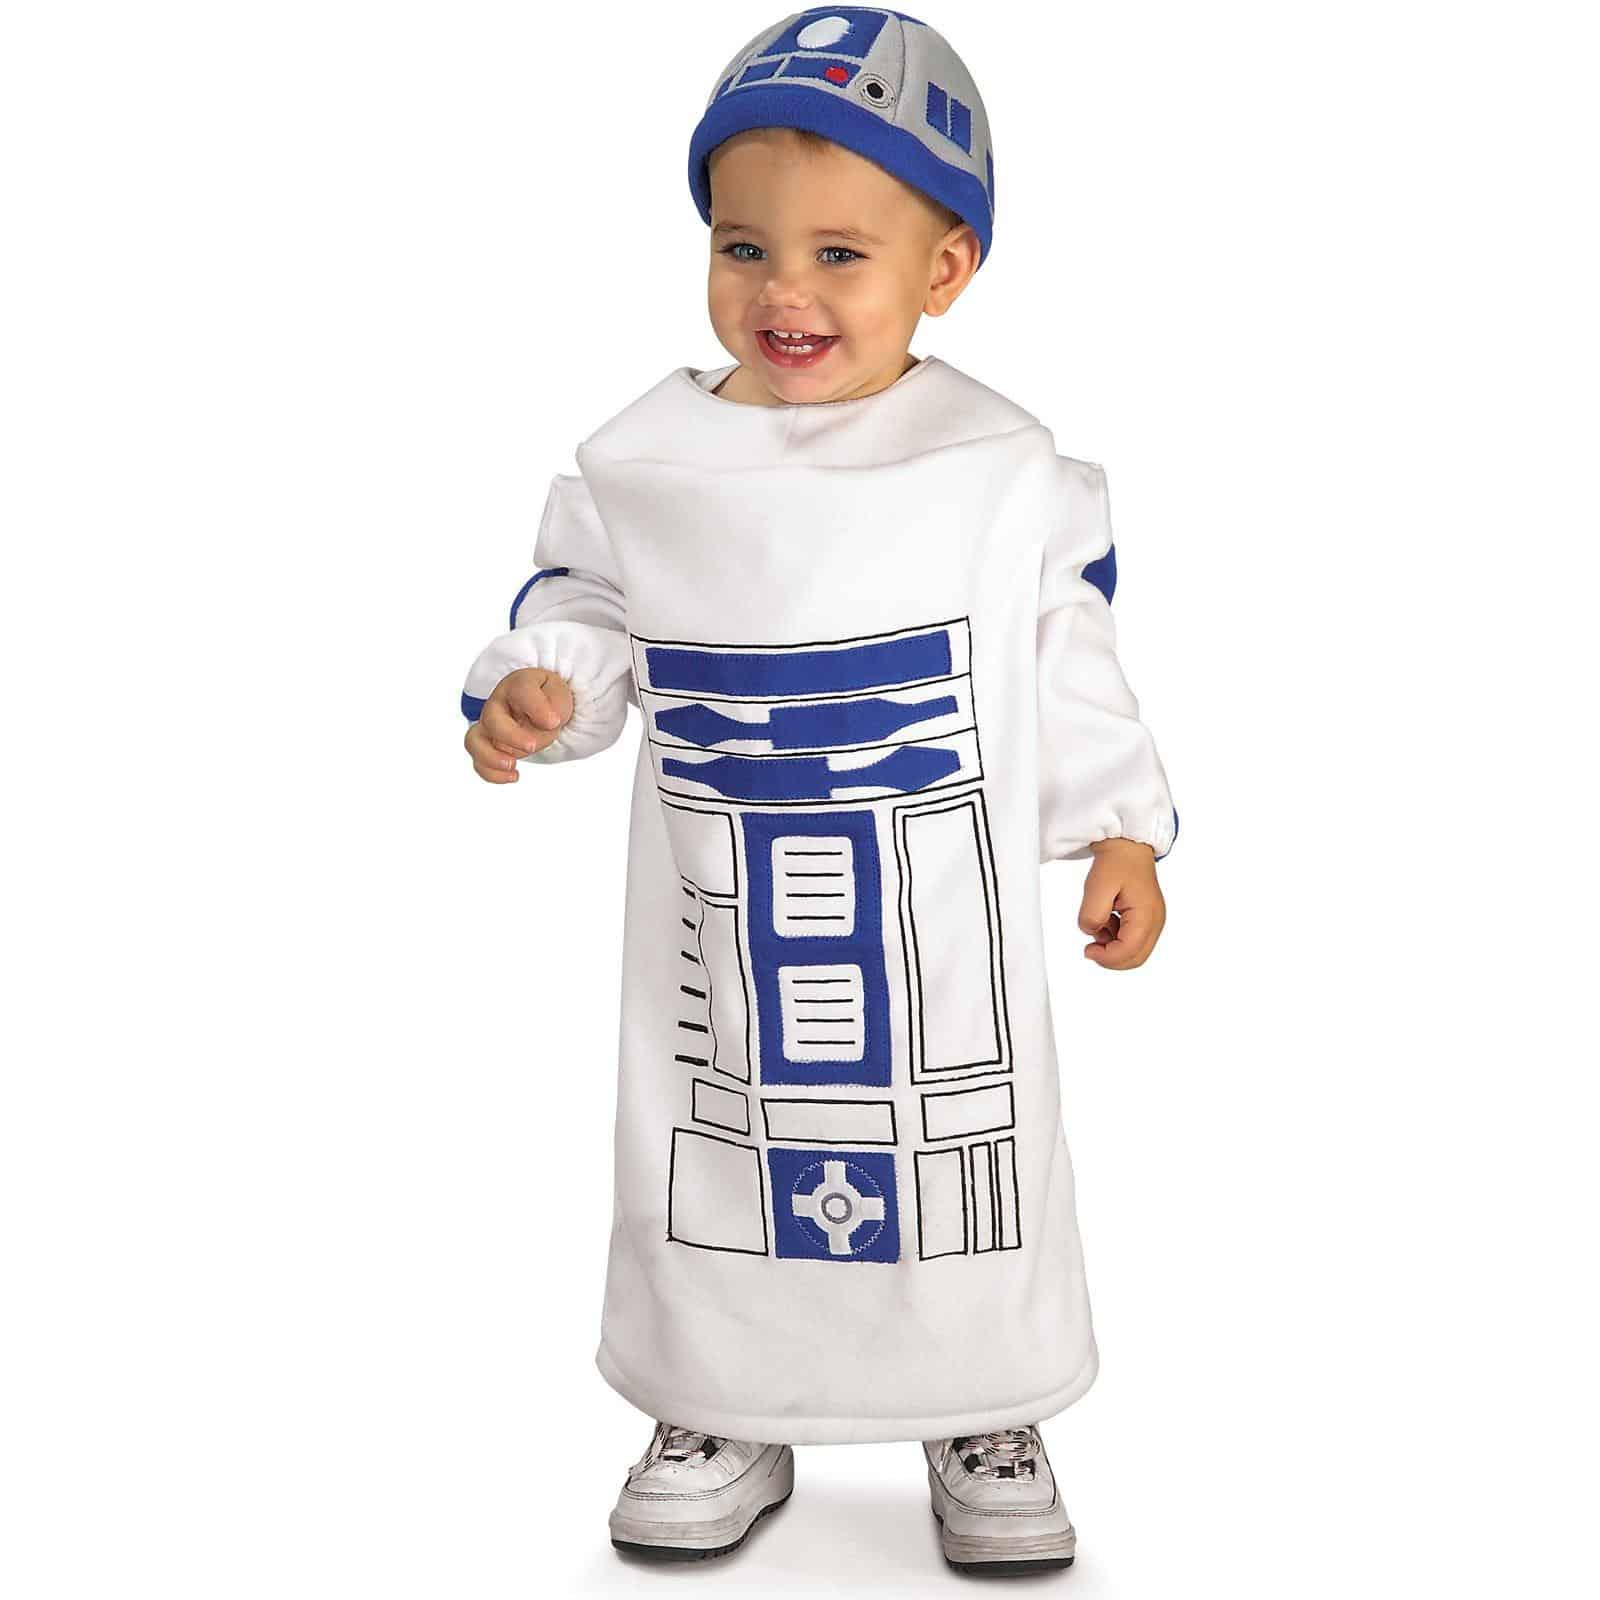 Star Wars R2D2 Toddler Costume